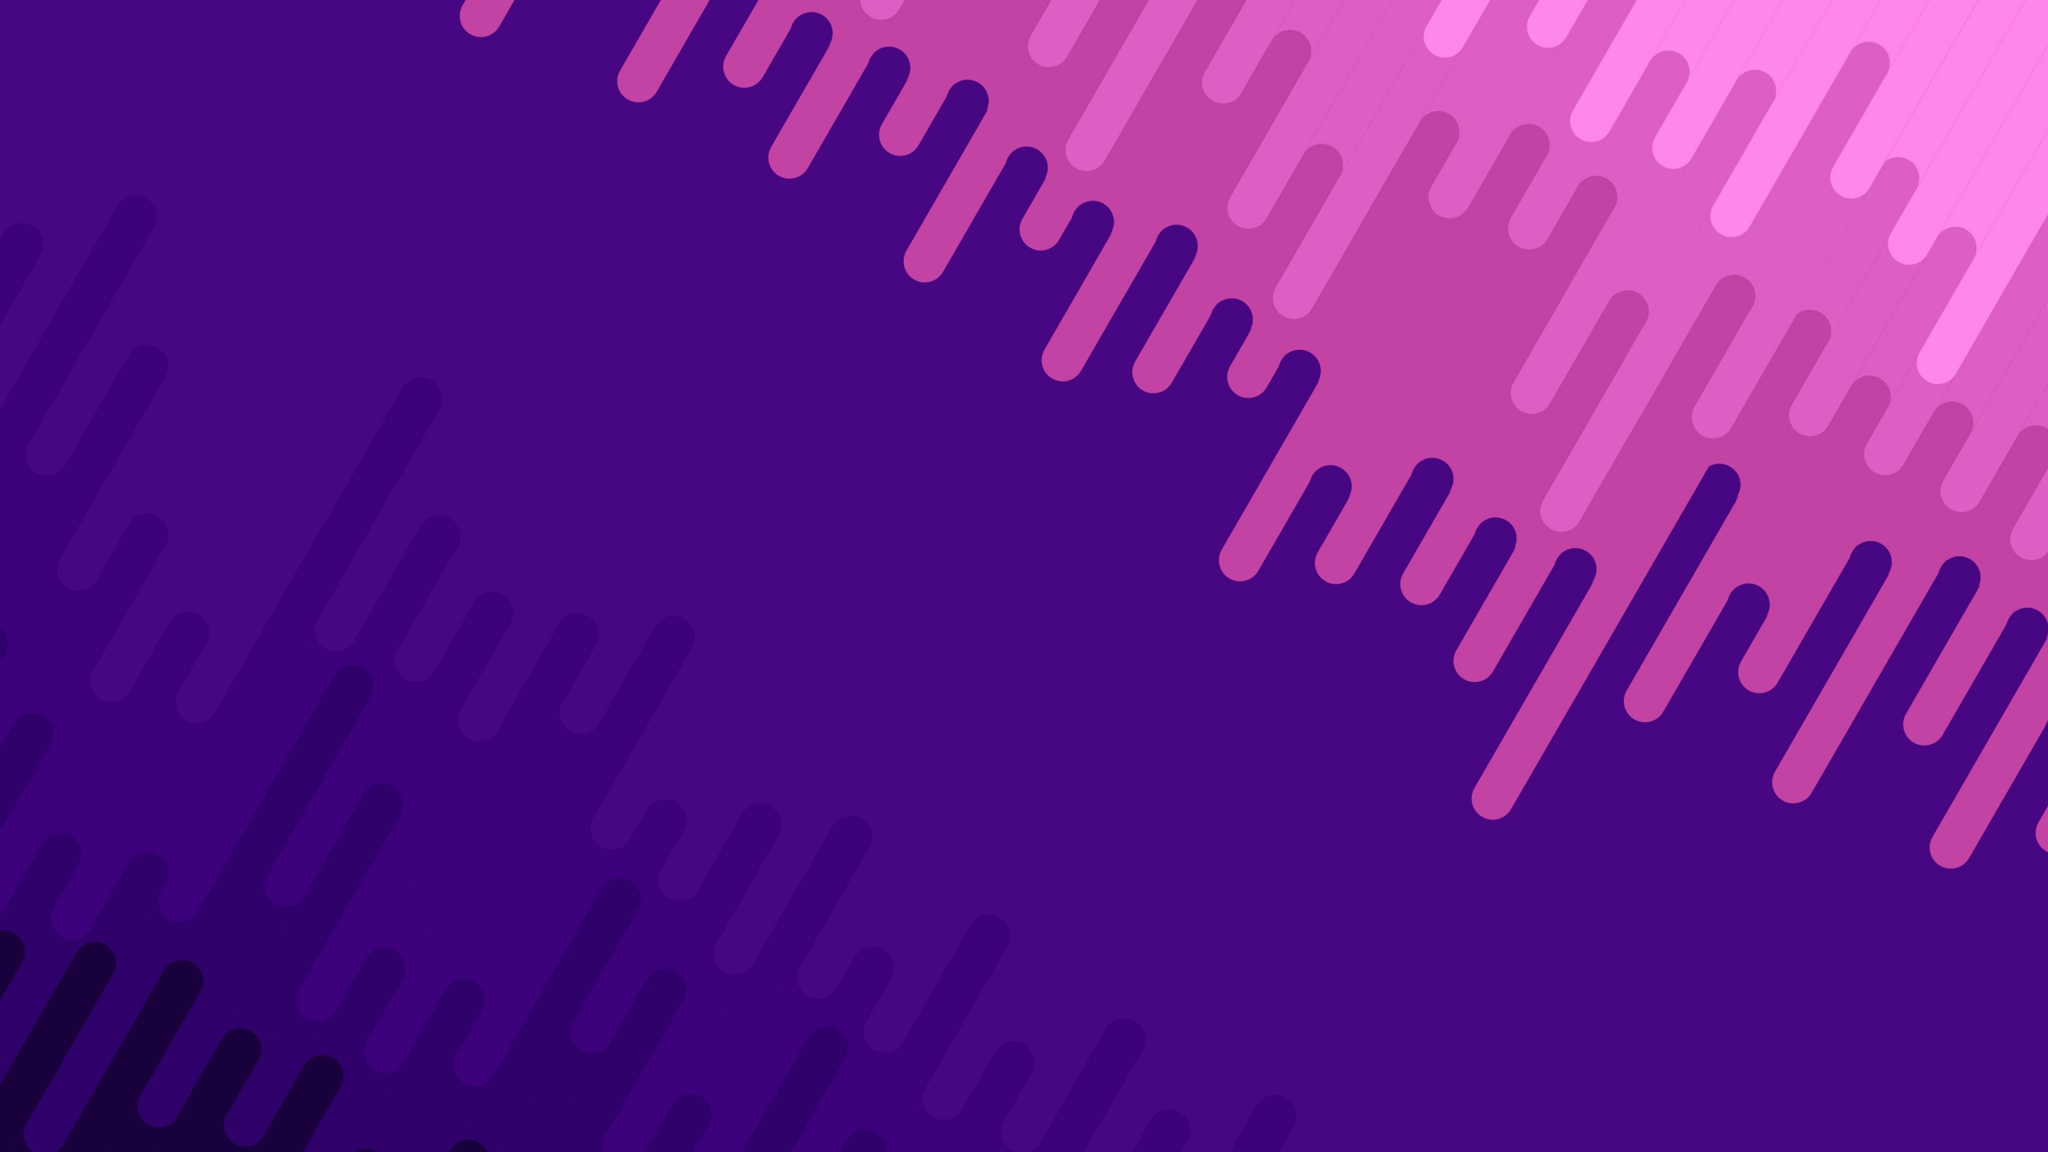 Diagonal Purple And Pink Pattern Wallpapers 2048x1152 141922